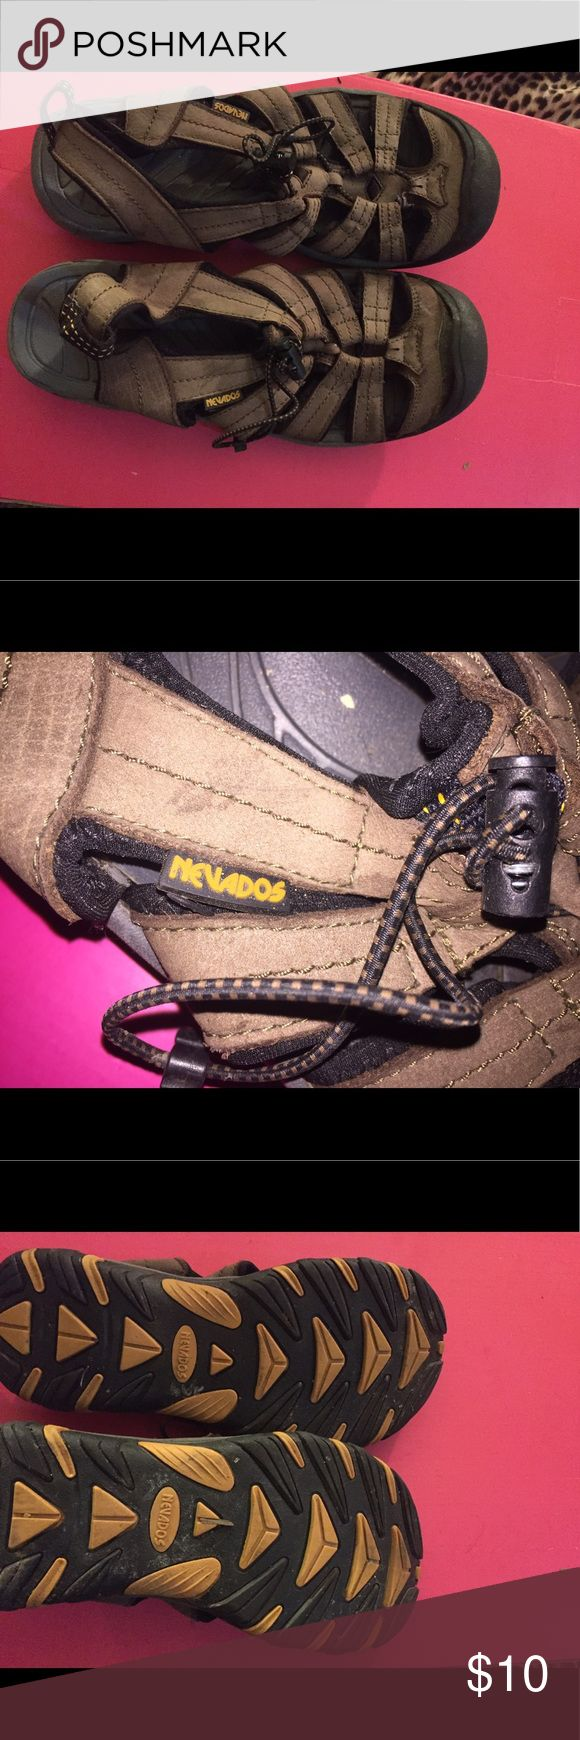 🌼Nevados closed toe sport/hiking sandals🌼 Good used condition. Lots of life left in these great sandals. Great for long walks, vacations, those with back or knee problems. Great quality sandals!! Check out my other items and bundle to save!! 😊❤️ nevados Shoes Sandals